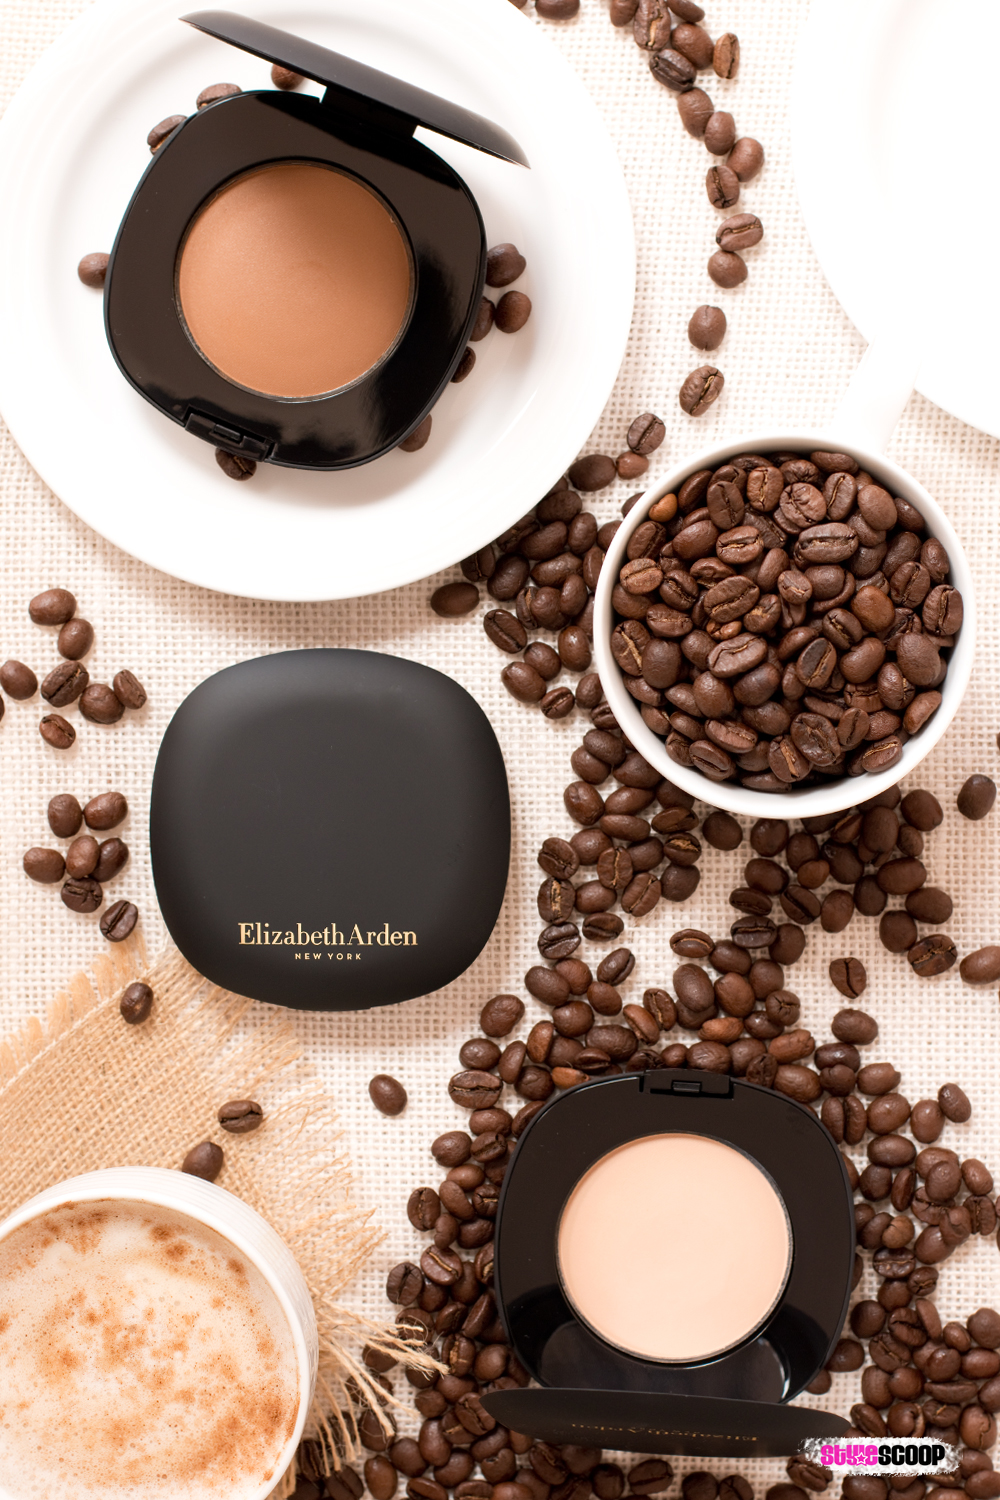 Elizabeth Arden Flawless Finish Bouncy Makeup